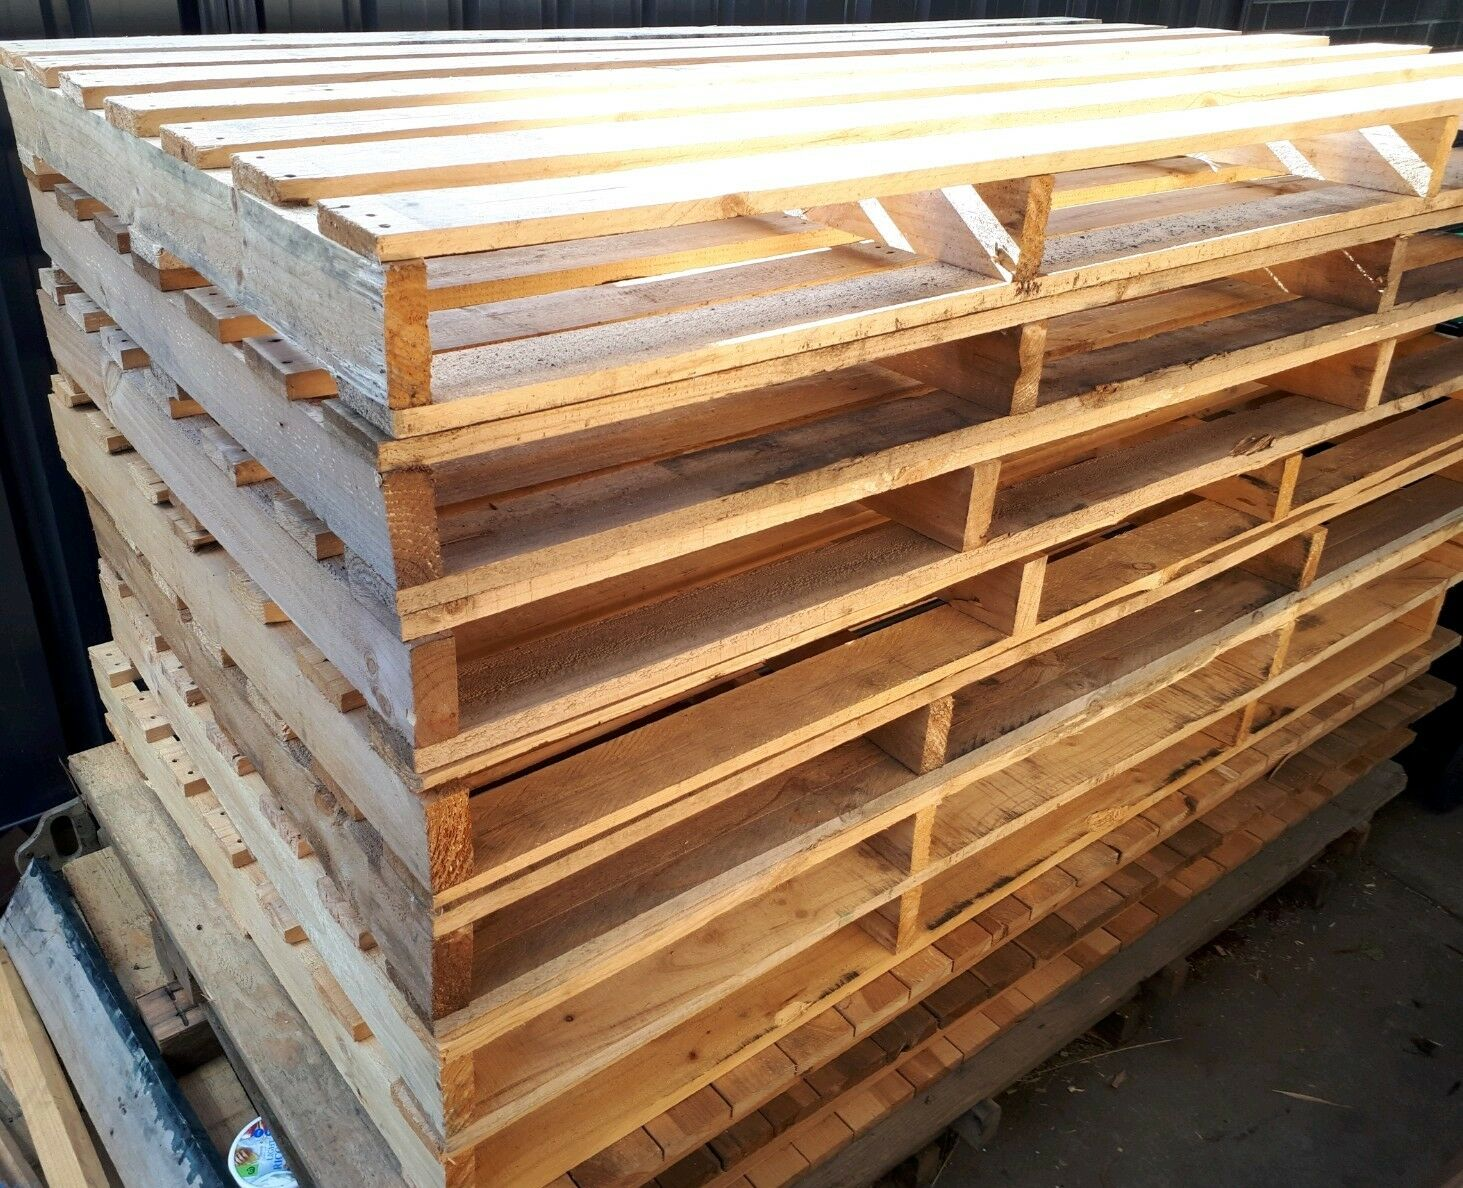 Mac's Wood Products | We Buy/Sell Crates and Pallets!